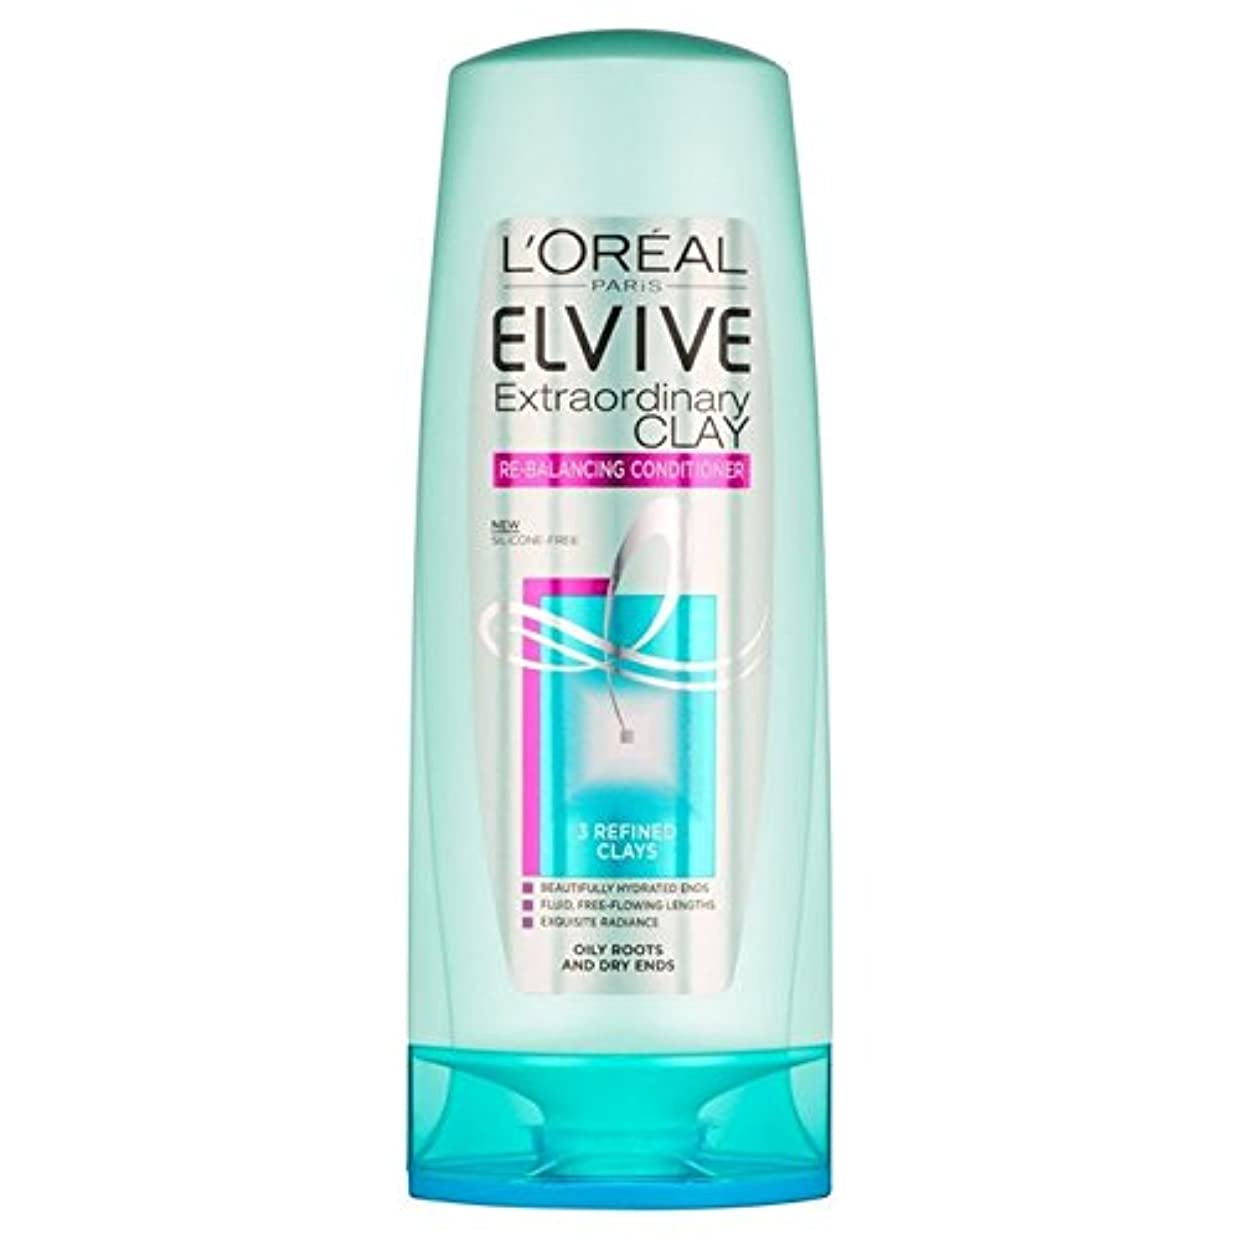 L'Oreal Paris Elvive Extraordinary Clay Re-Balancing Conditioner 400ml (Pack of 6) - ロレアルパリ臨時粘土再バランシングコンディショナー...